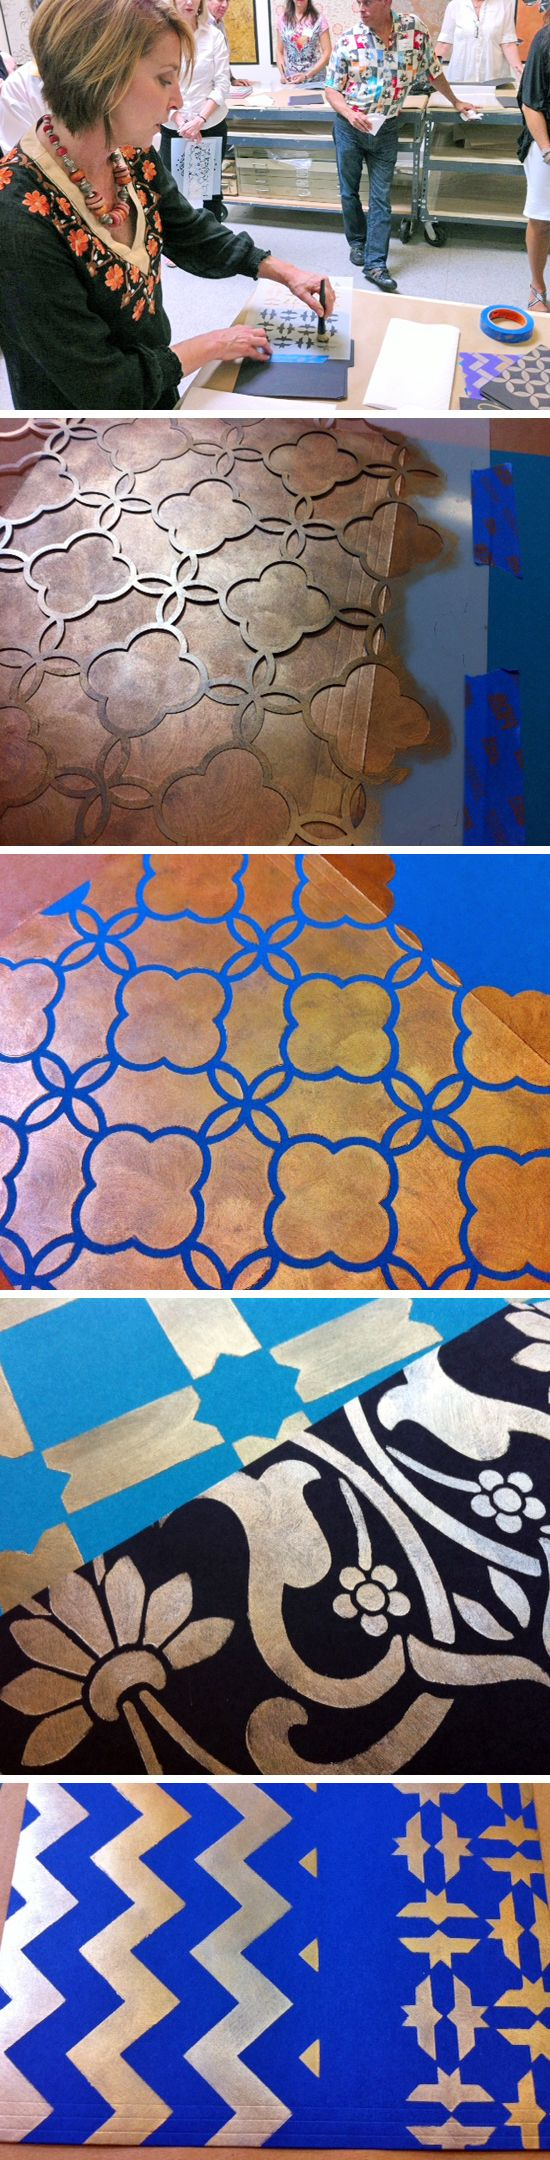 Our Moroccan stencils and stencil project from the Marrakesh by Design event-as blogged by Love, Paper, Paint.